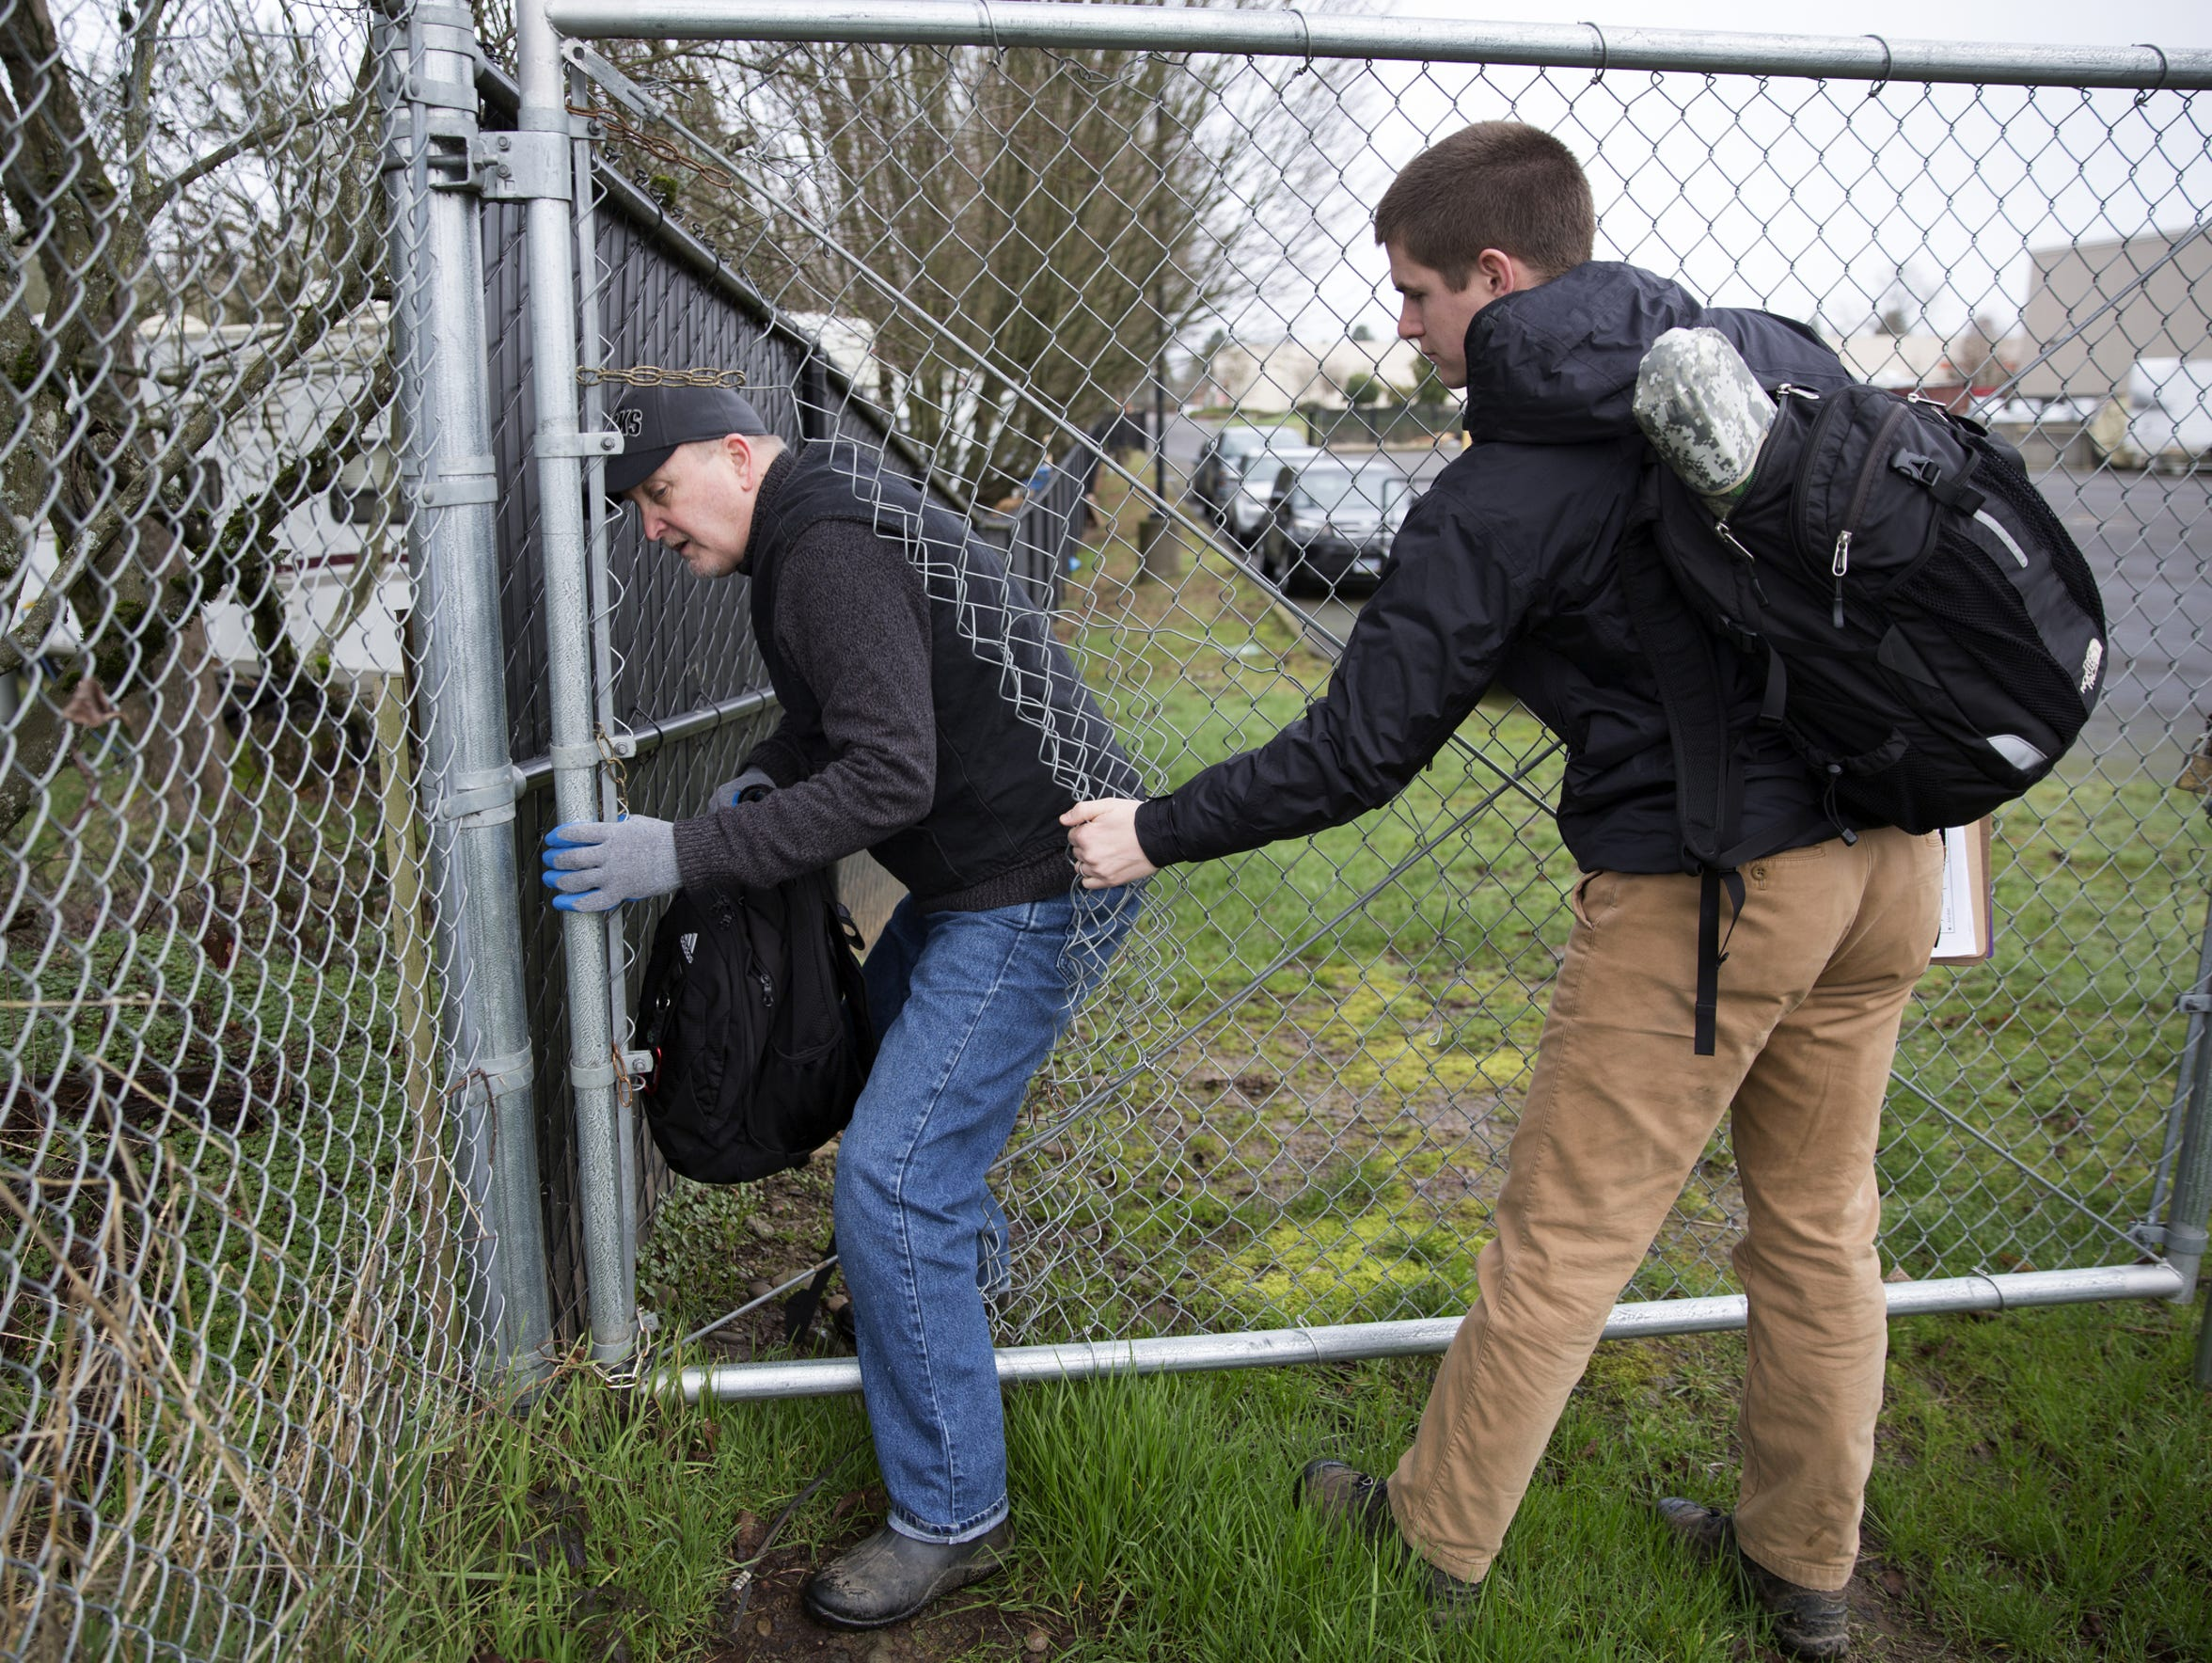 Volunteers Jerry Stevens, left, and Bryce Petersen slip through a hole in a fence to try and find a homeless camp during the Homeless Point-in-Time count near Highway 22 in Salem on Wednesday, Jan. 31, 2018.